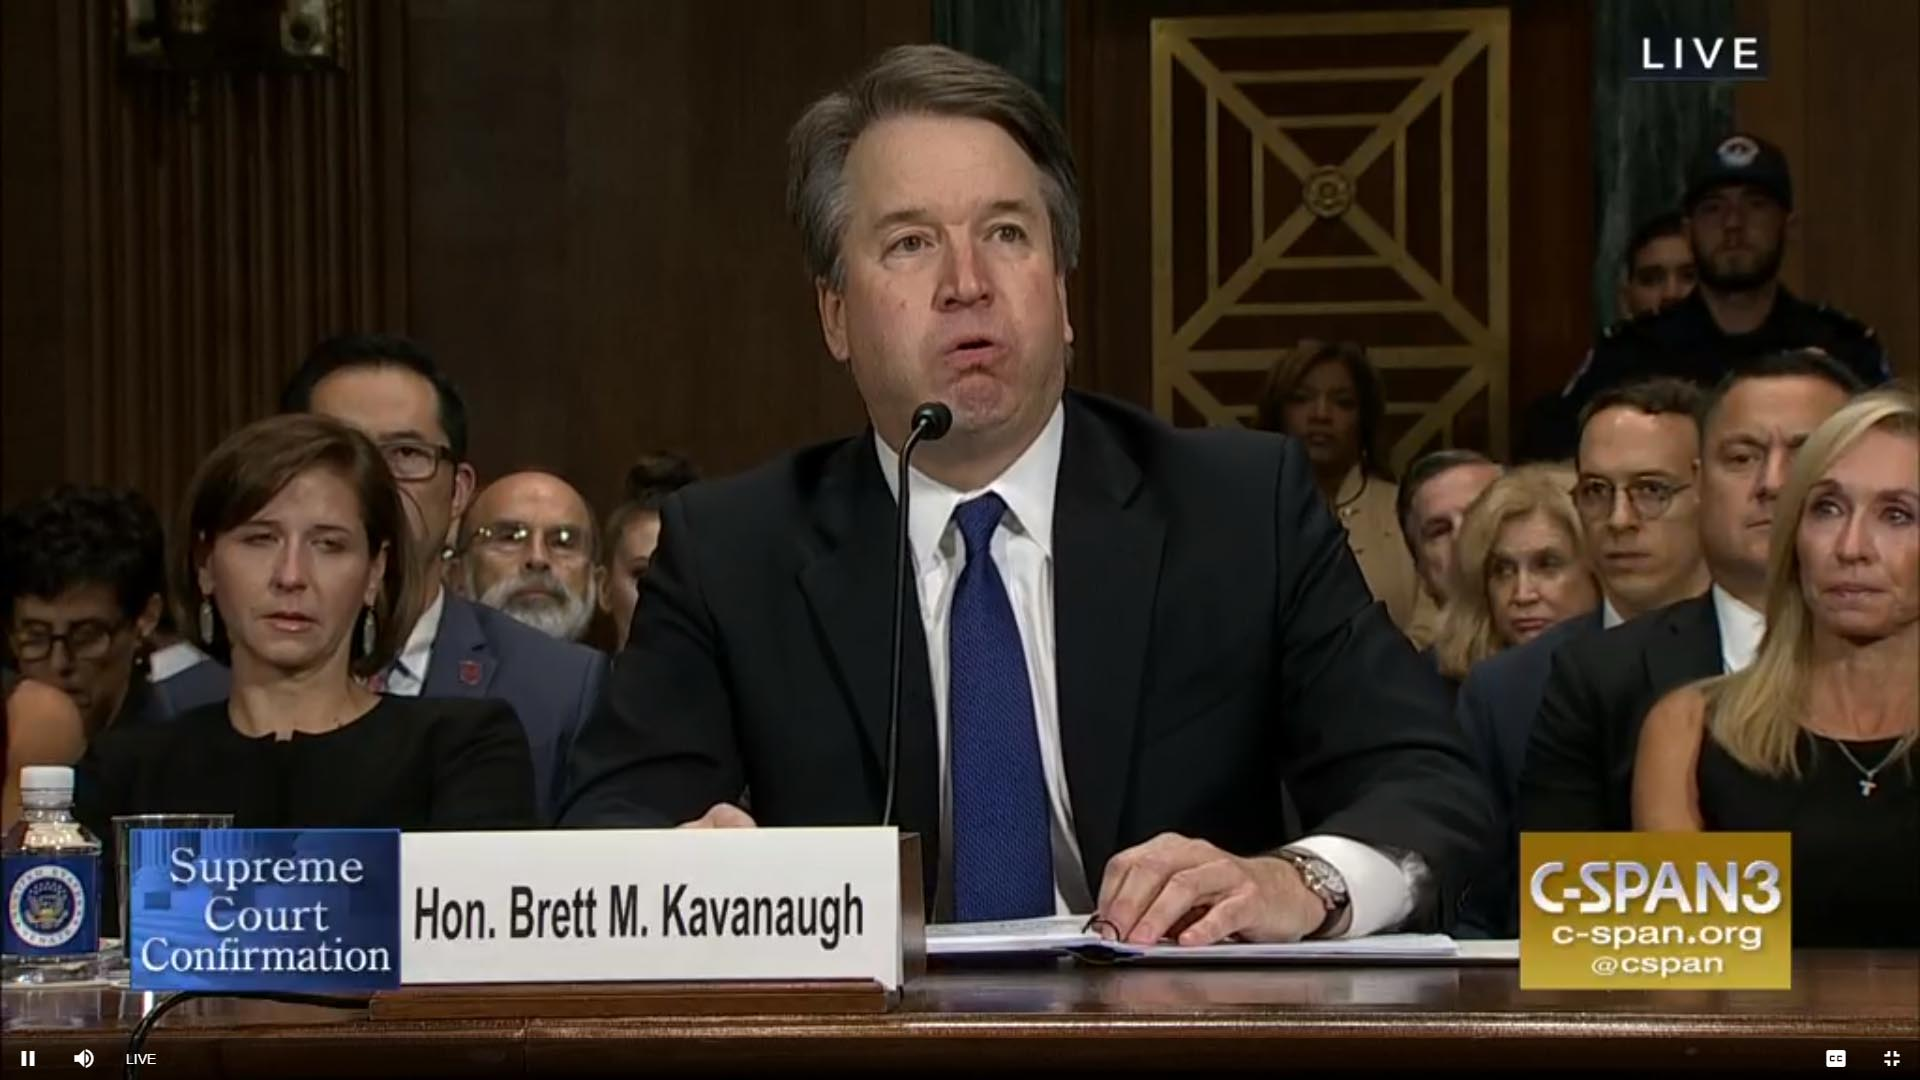 The Kavanaugh battle is not about sexual harrassment